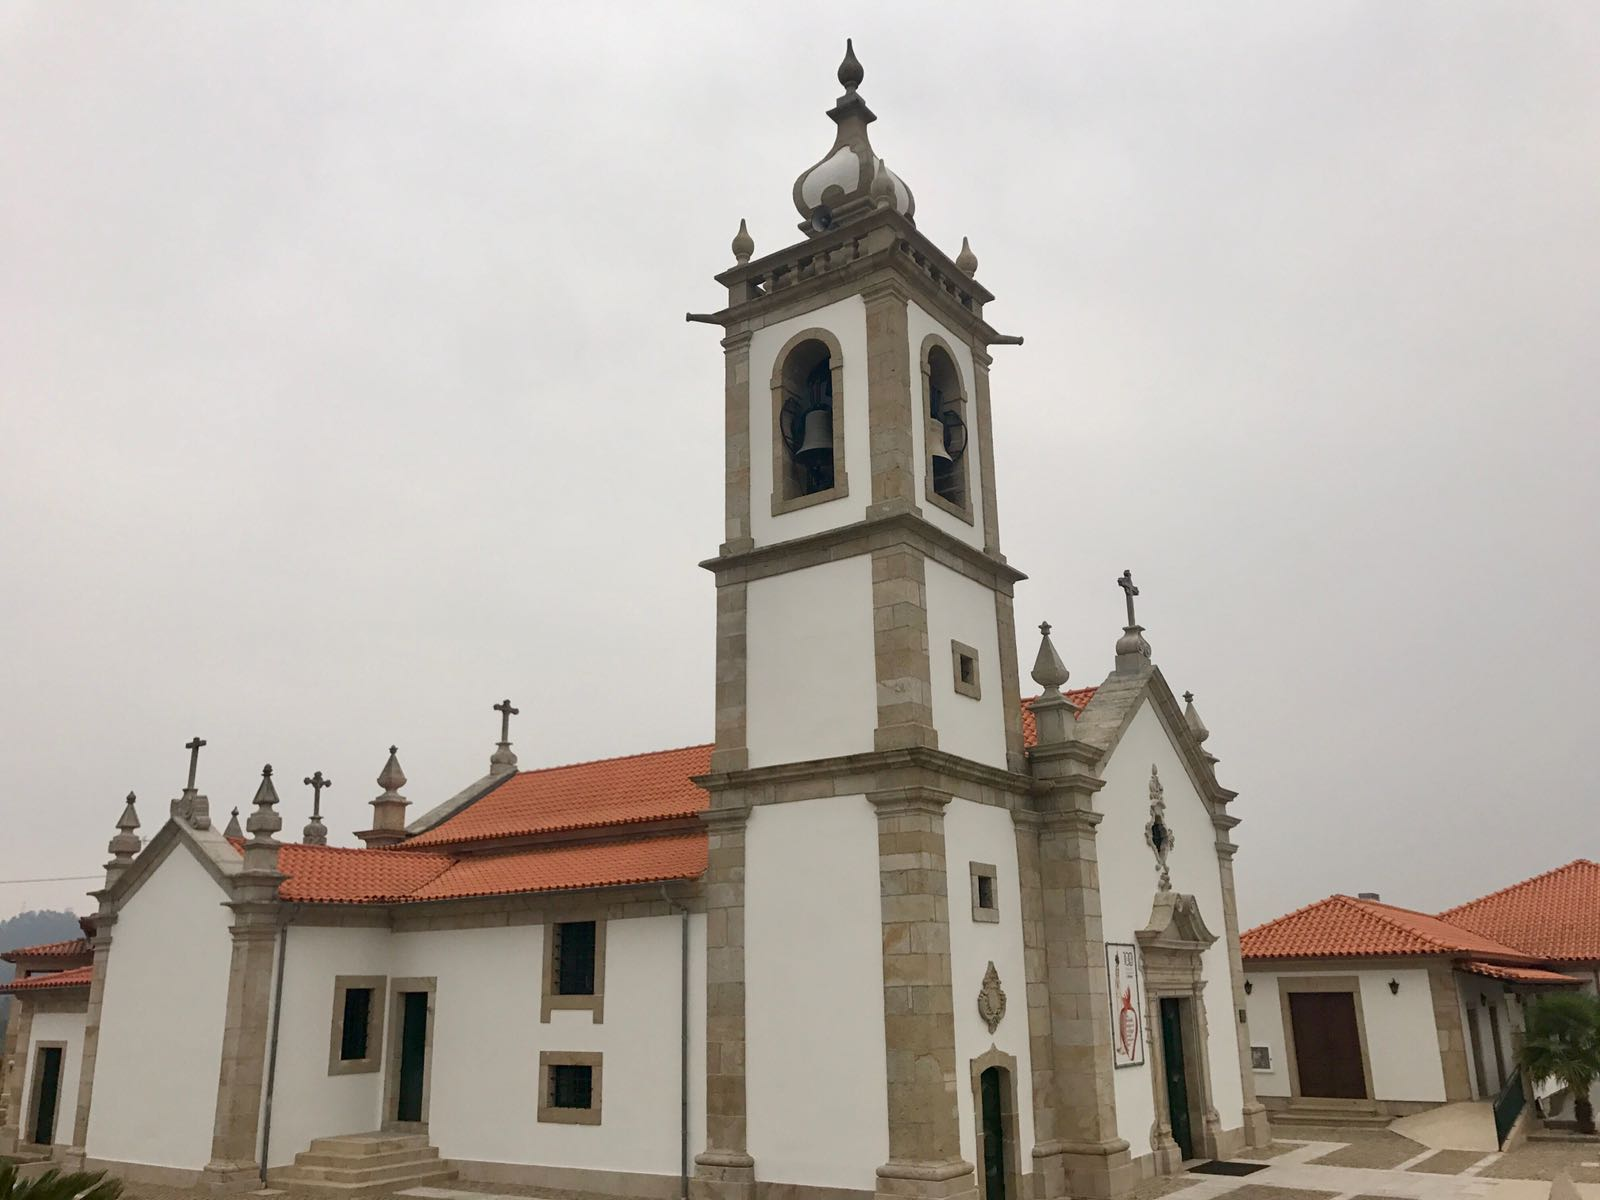 A Portuguese church with white walls, a red tile roof and a spire like the dome of a minaret